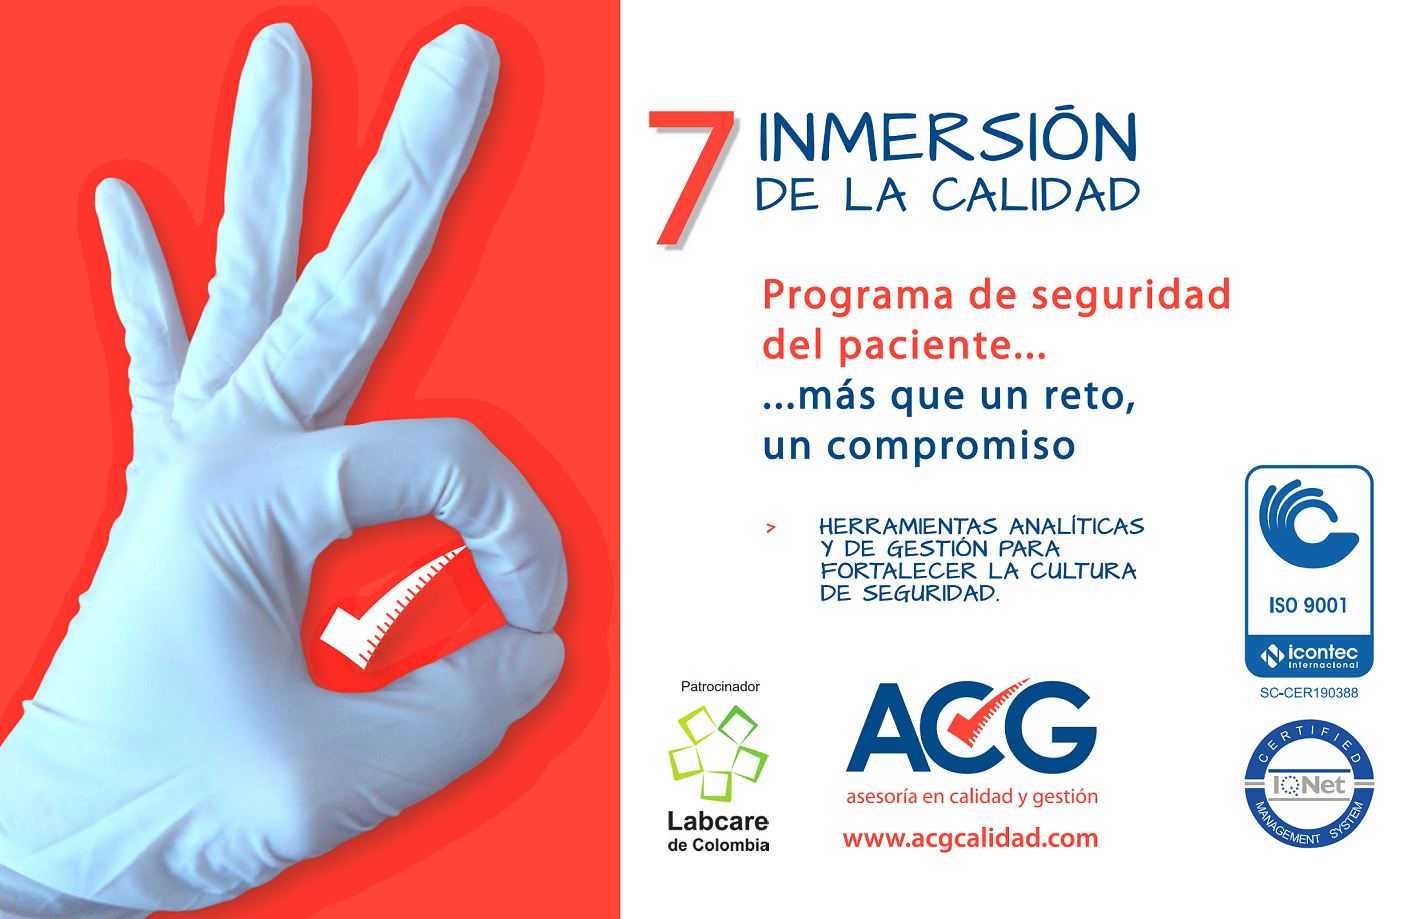 7-Inmersion-2014 2 001